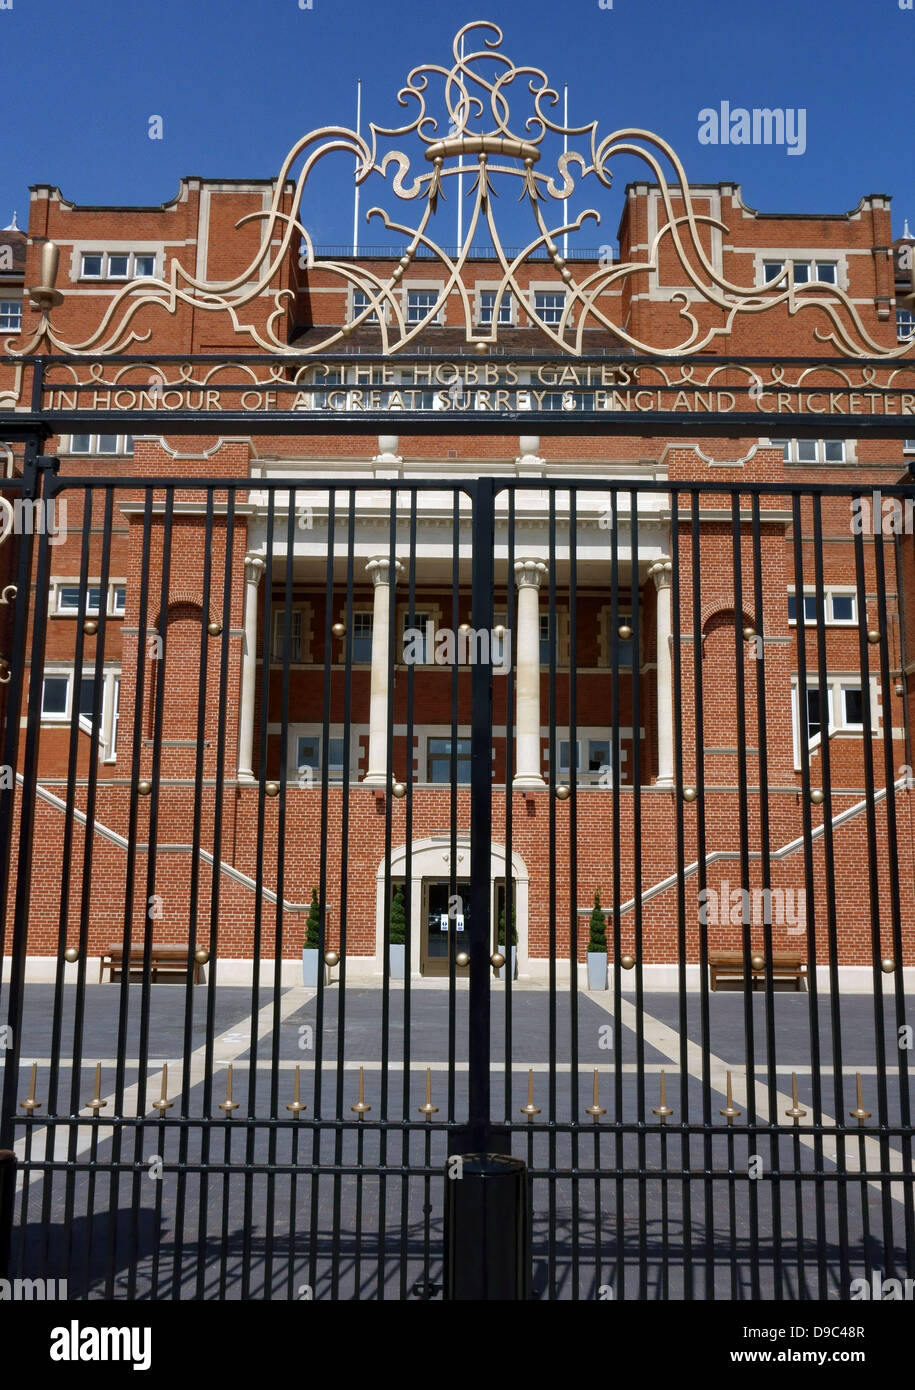 Rear of Pavilion stand and new Hobbs Gates at Oval cricket ground, London - Stock Image